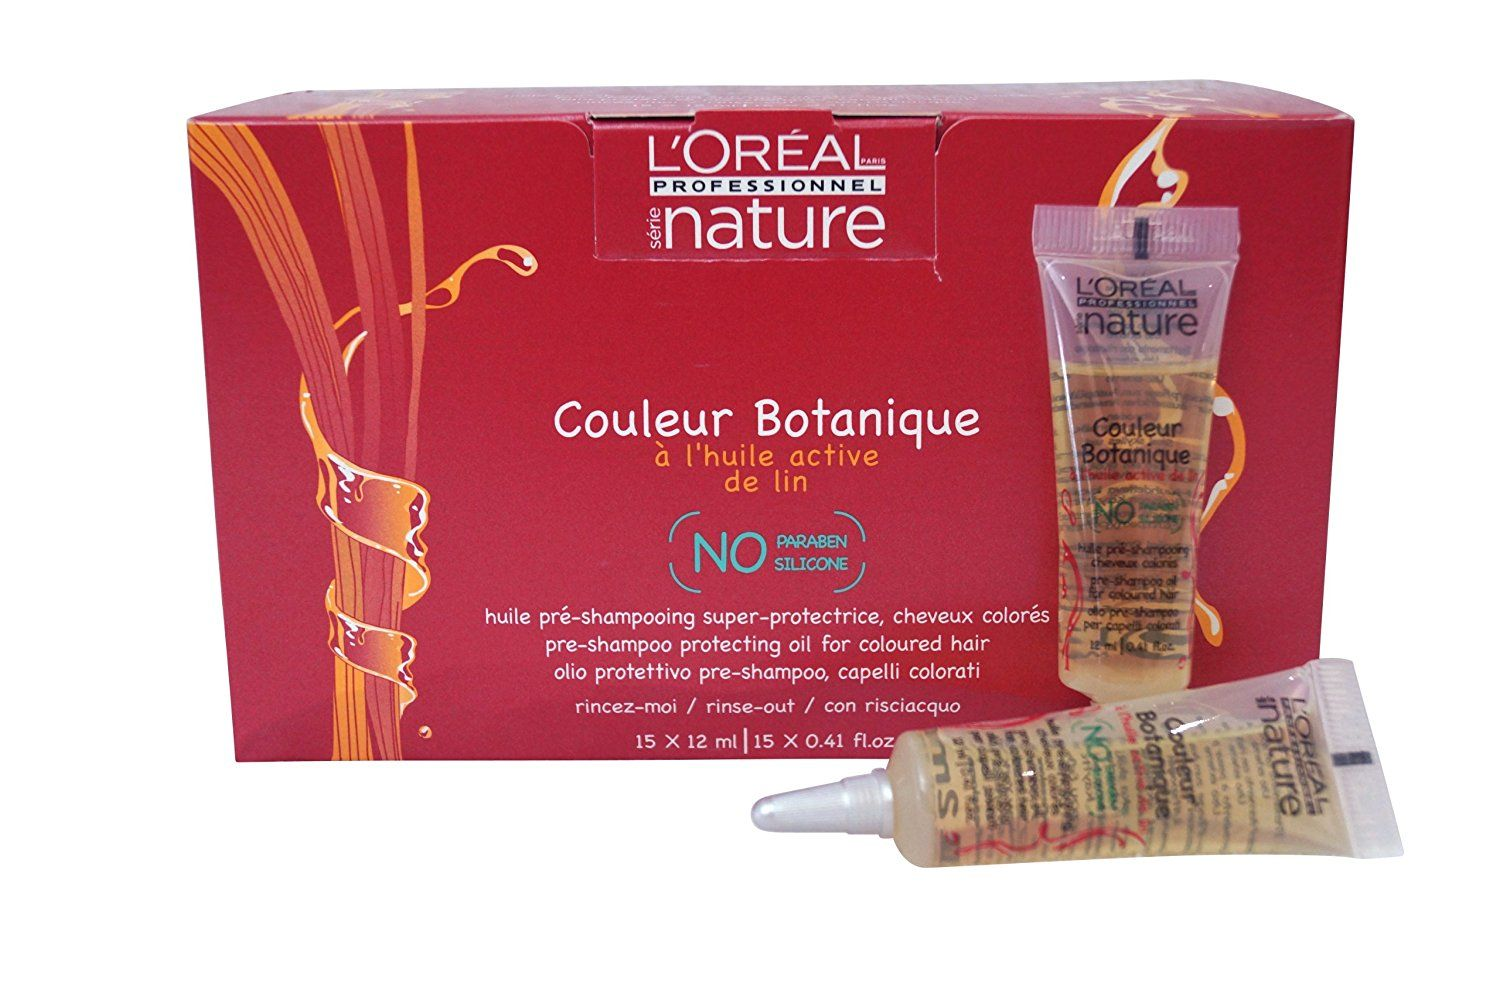 L'Oreal Nature Couleur Botanique Pre-Shampoo Protecting Oil 15 x 12 ml .41 oz >>> This is an Amazon Affiliate link. Be sure to check out this awesome product.